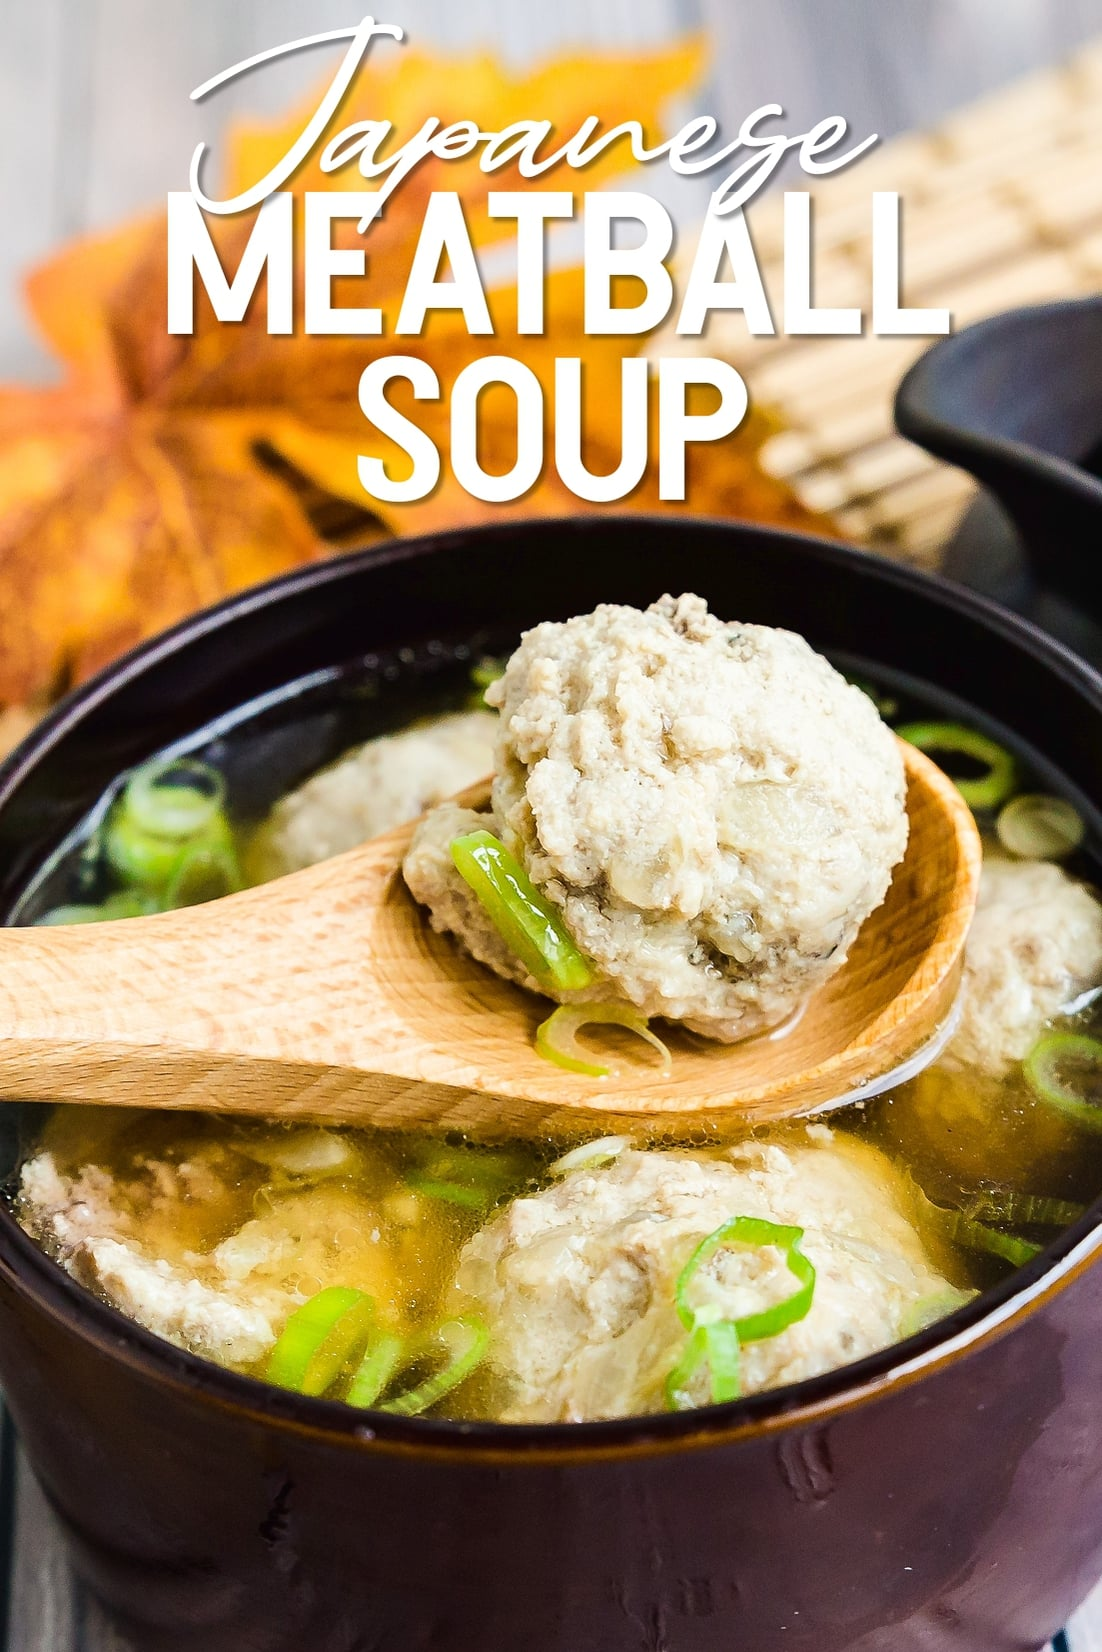 Japanese Meatball Dango Soup with a spoon